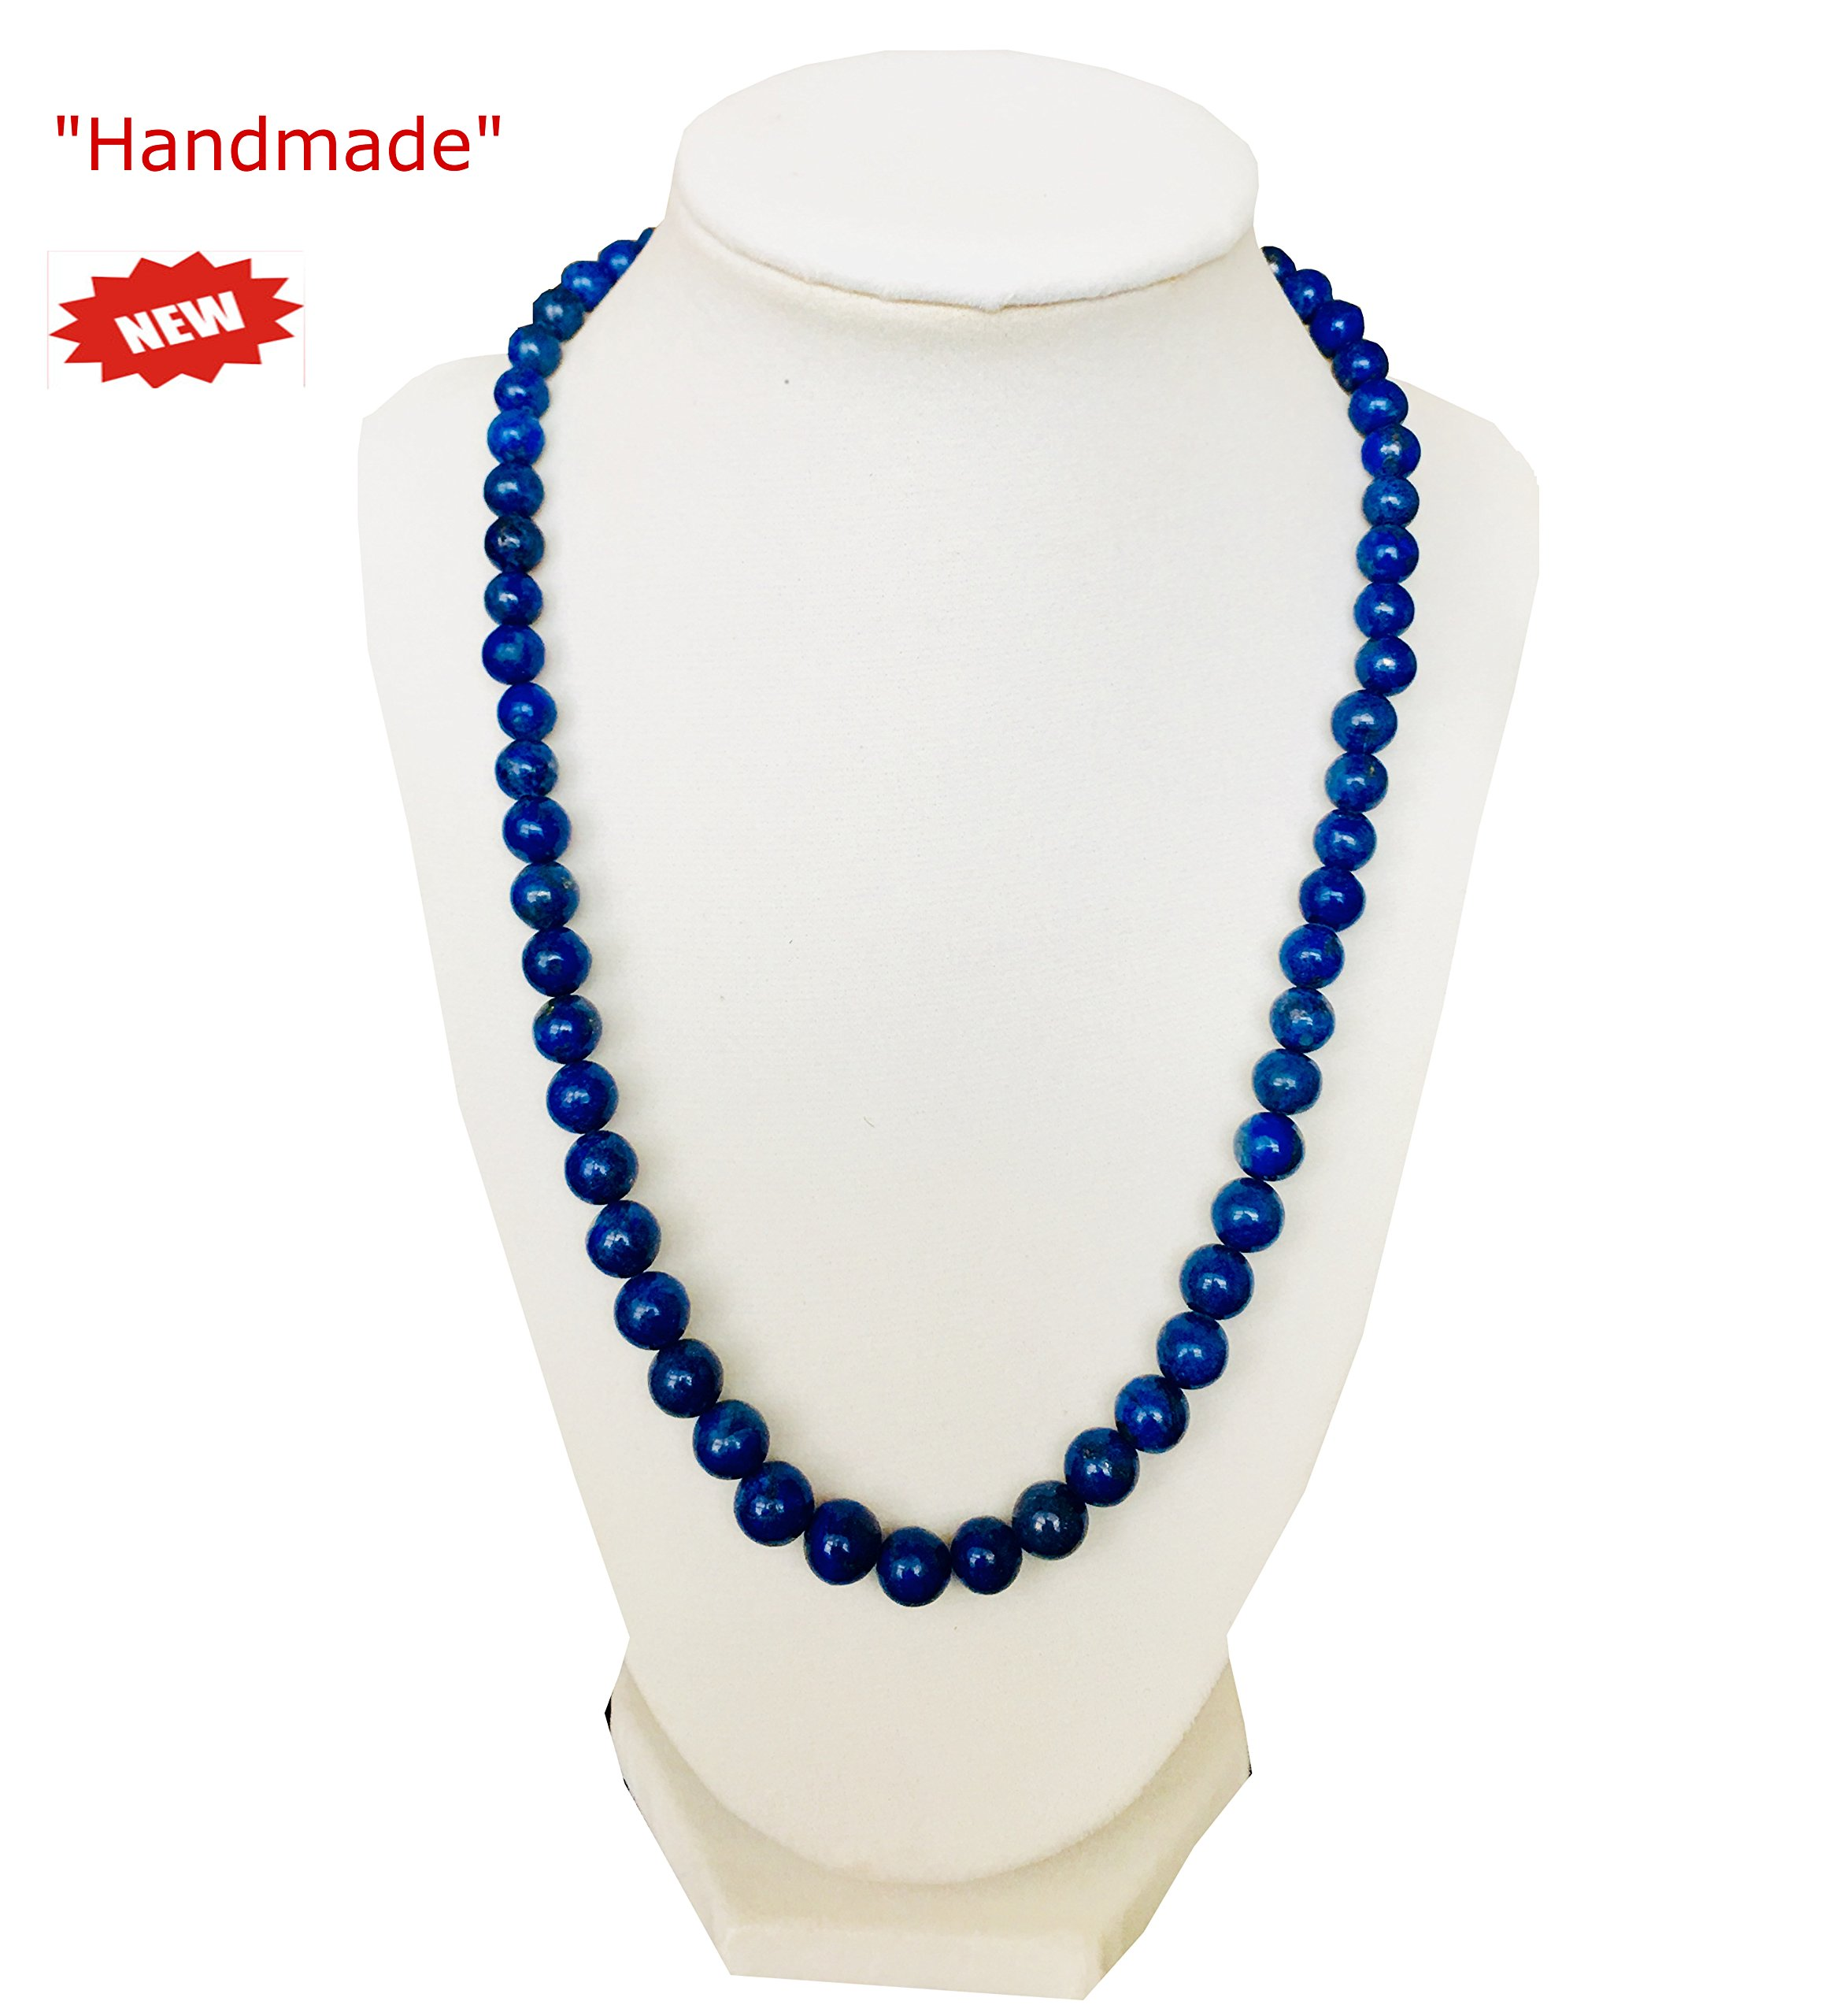 Himalayan Handmade Elegant Necklace Blue Color Multi Size Coral Shape Beads Gemstone Comes With Gift Box